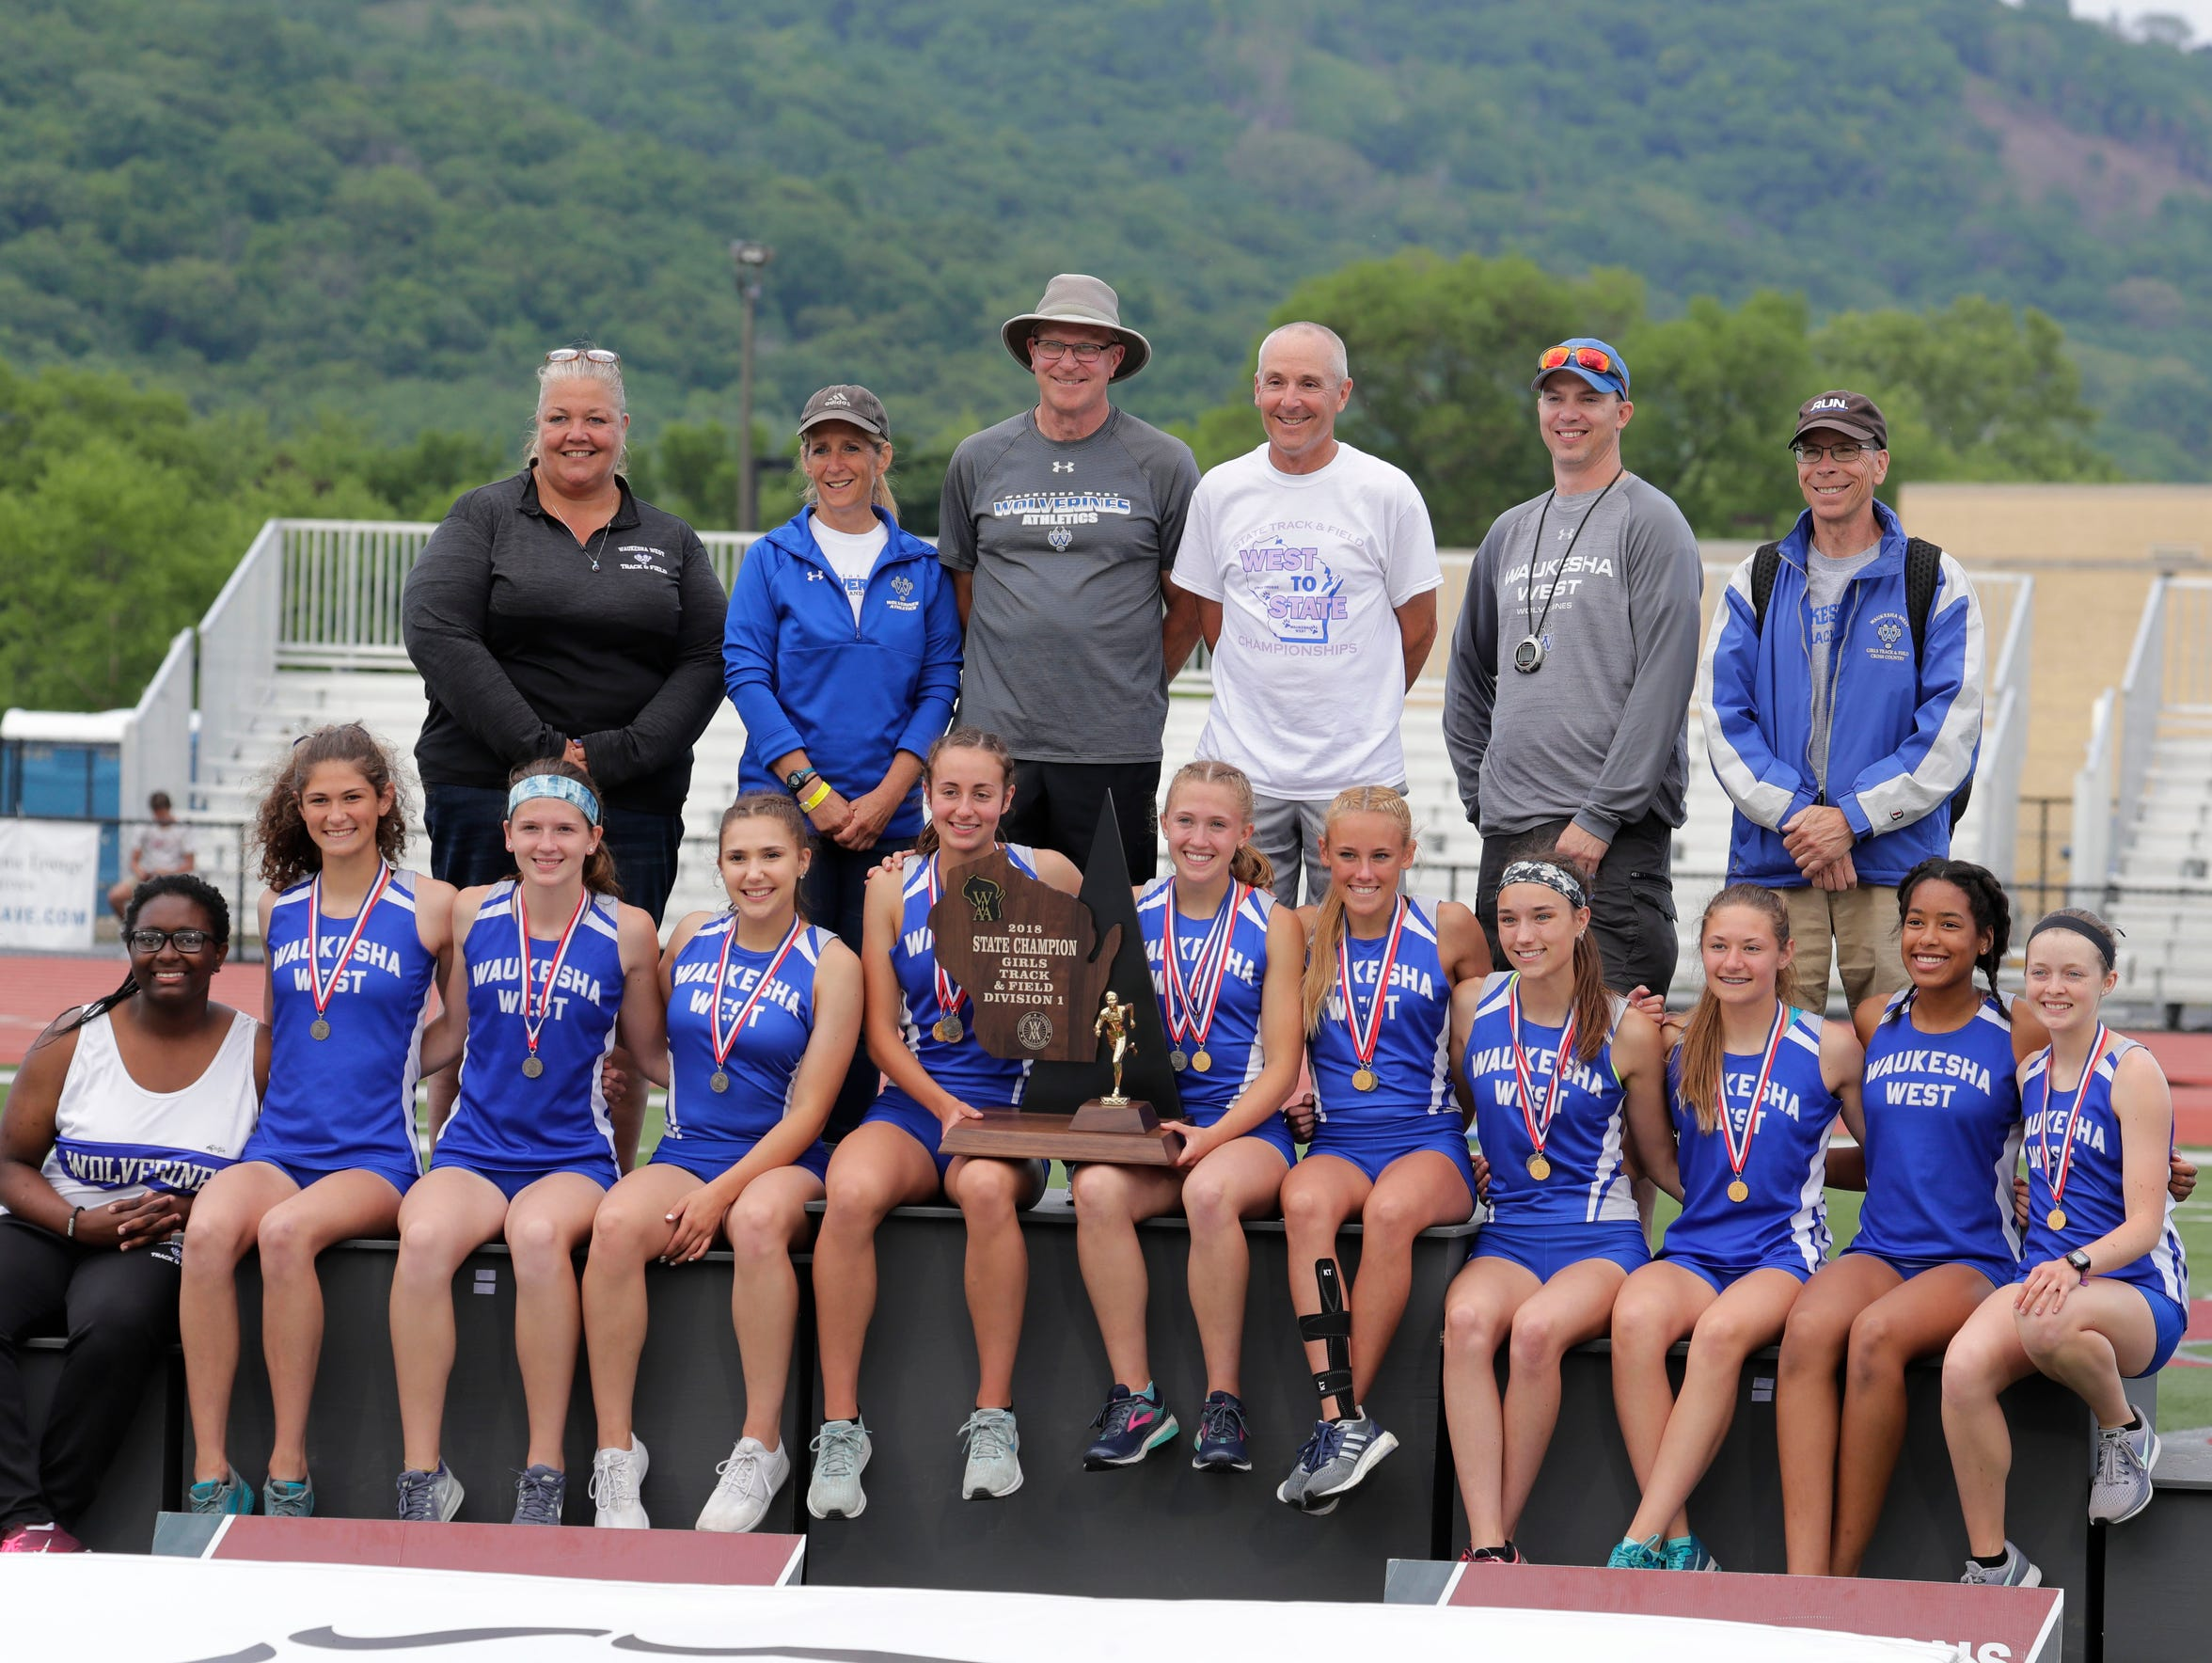 The Waukesha West girls squad poses with the Division